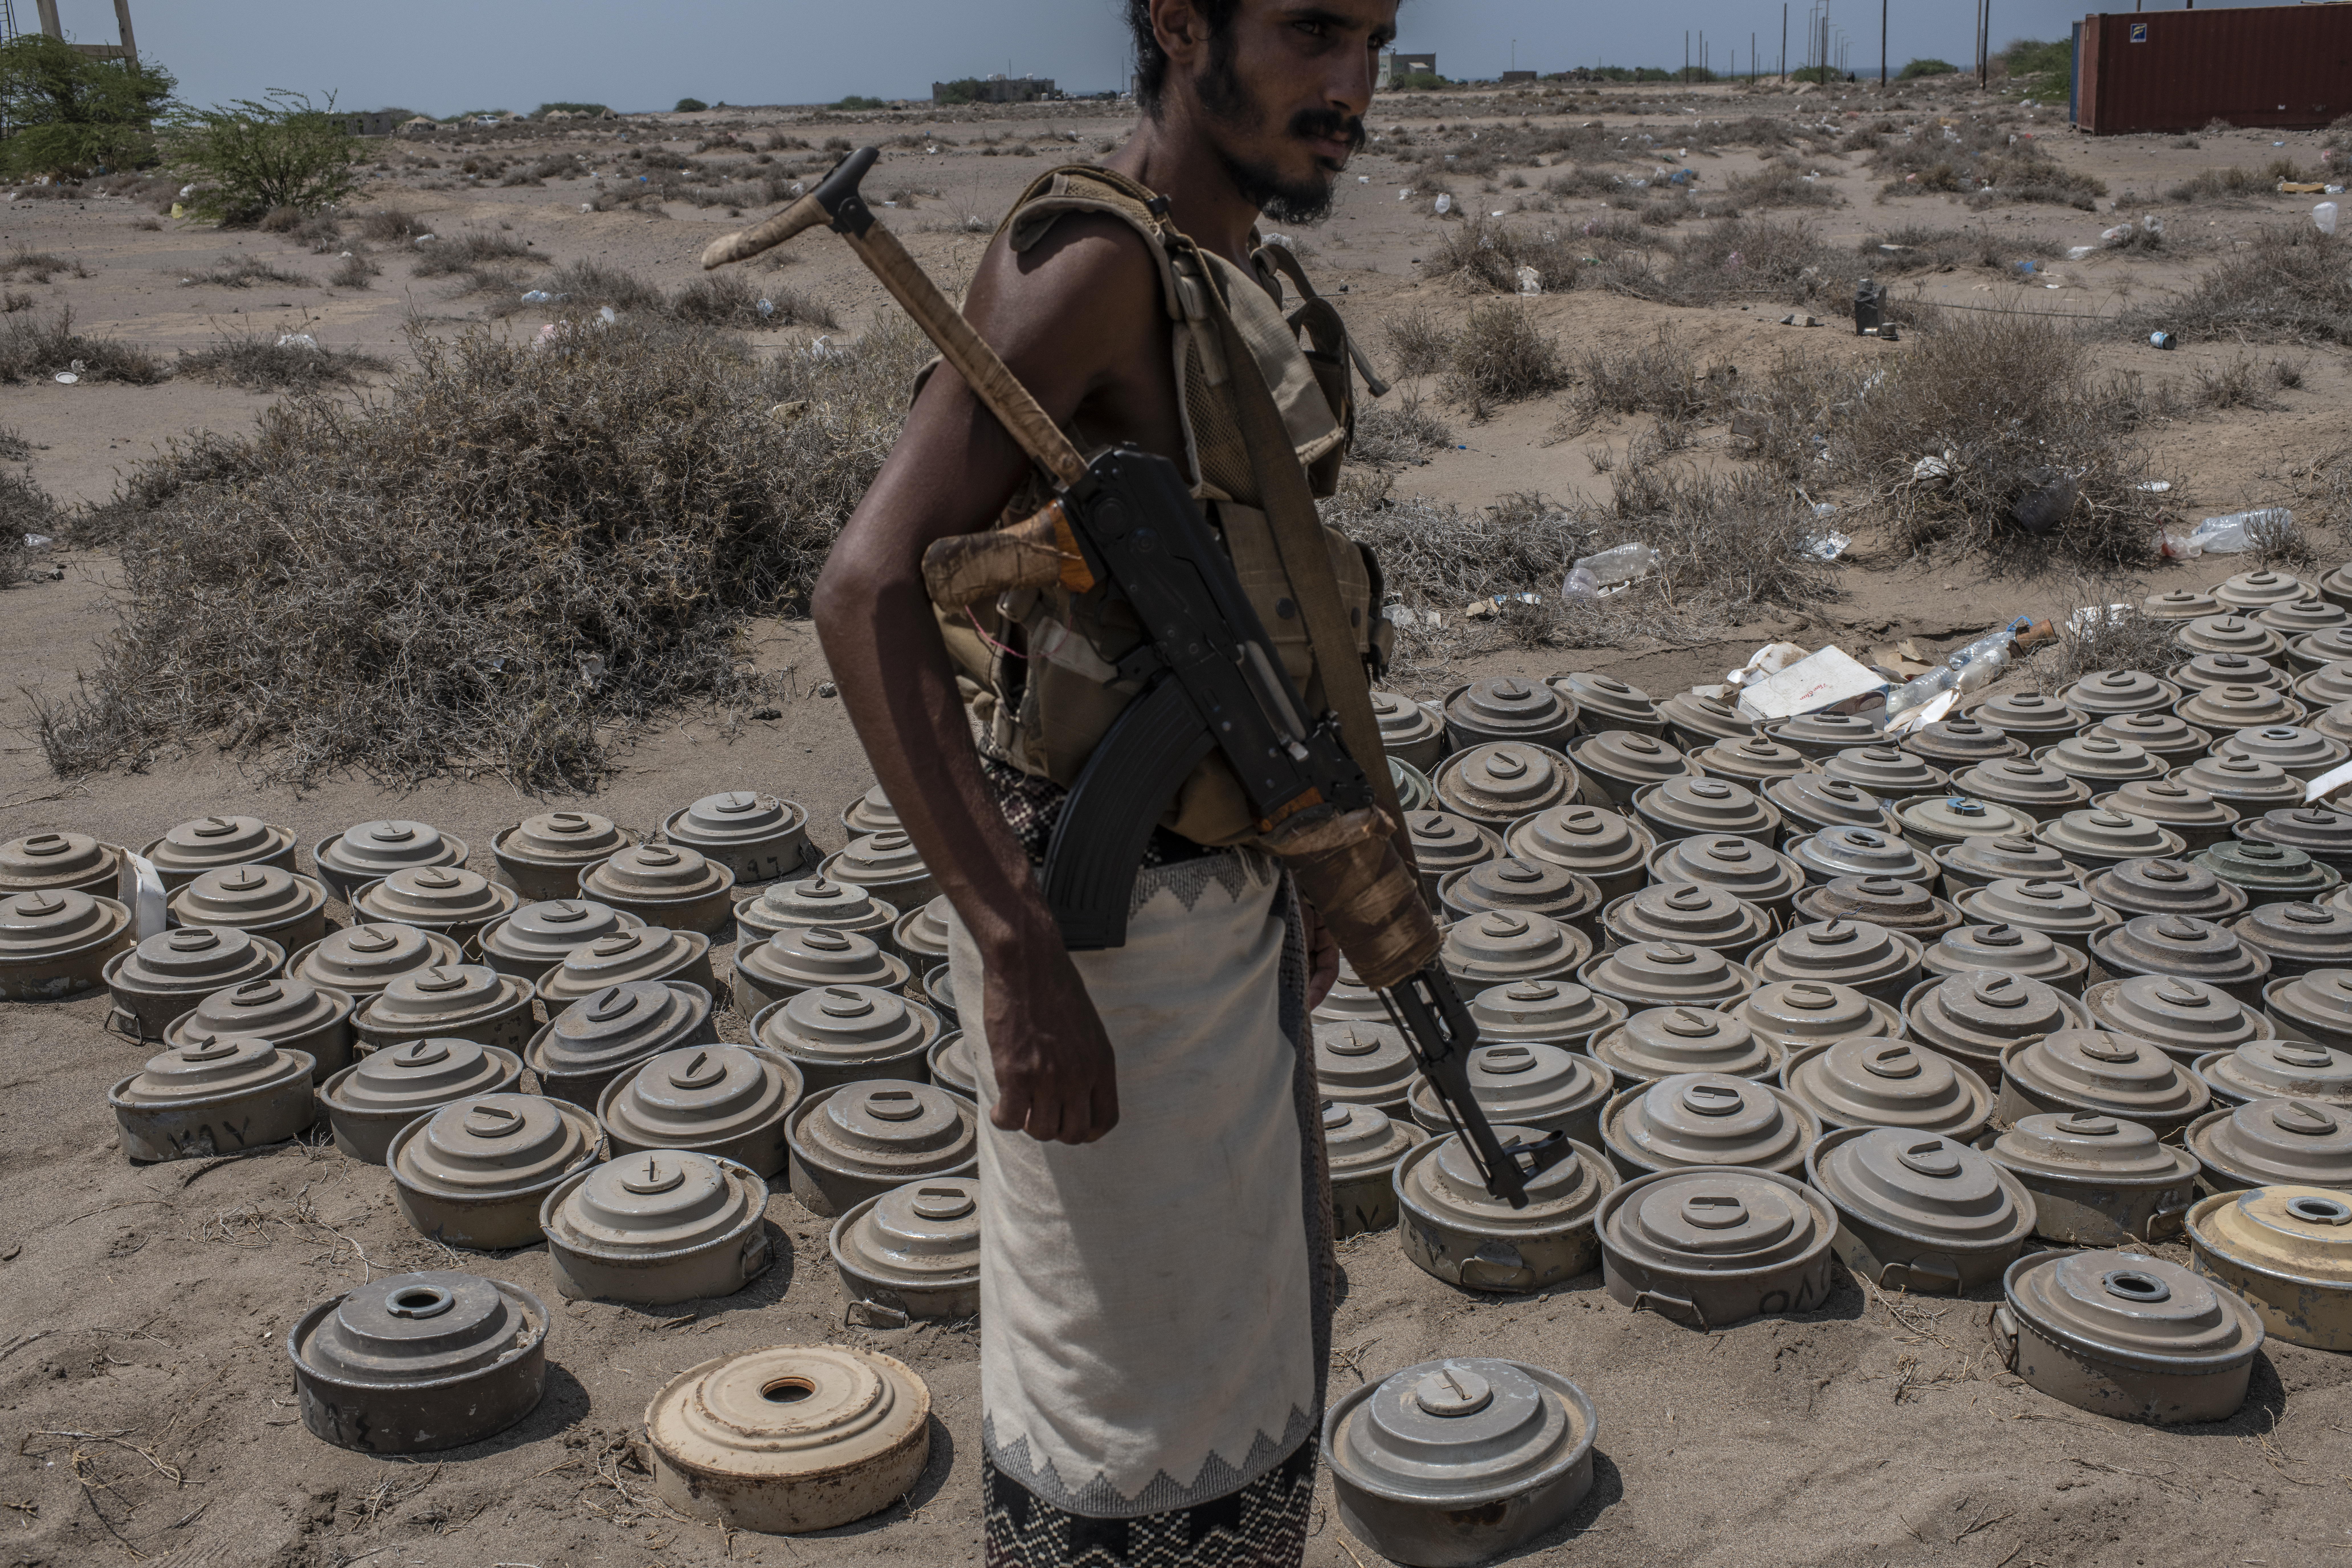 The US may use a loophole to sell billions in weapons to Saudi